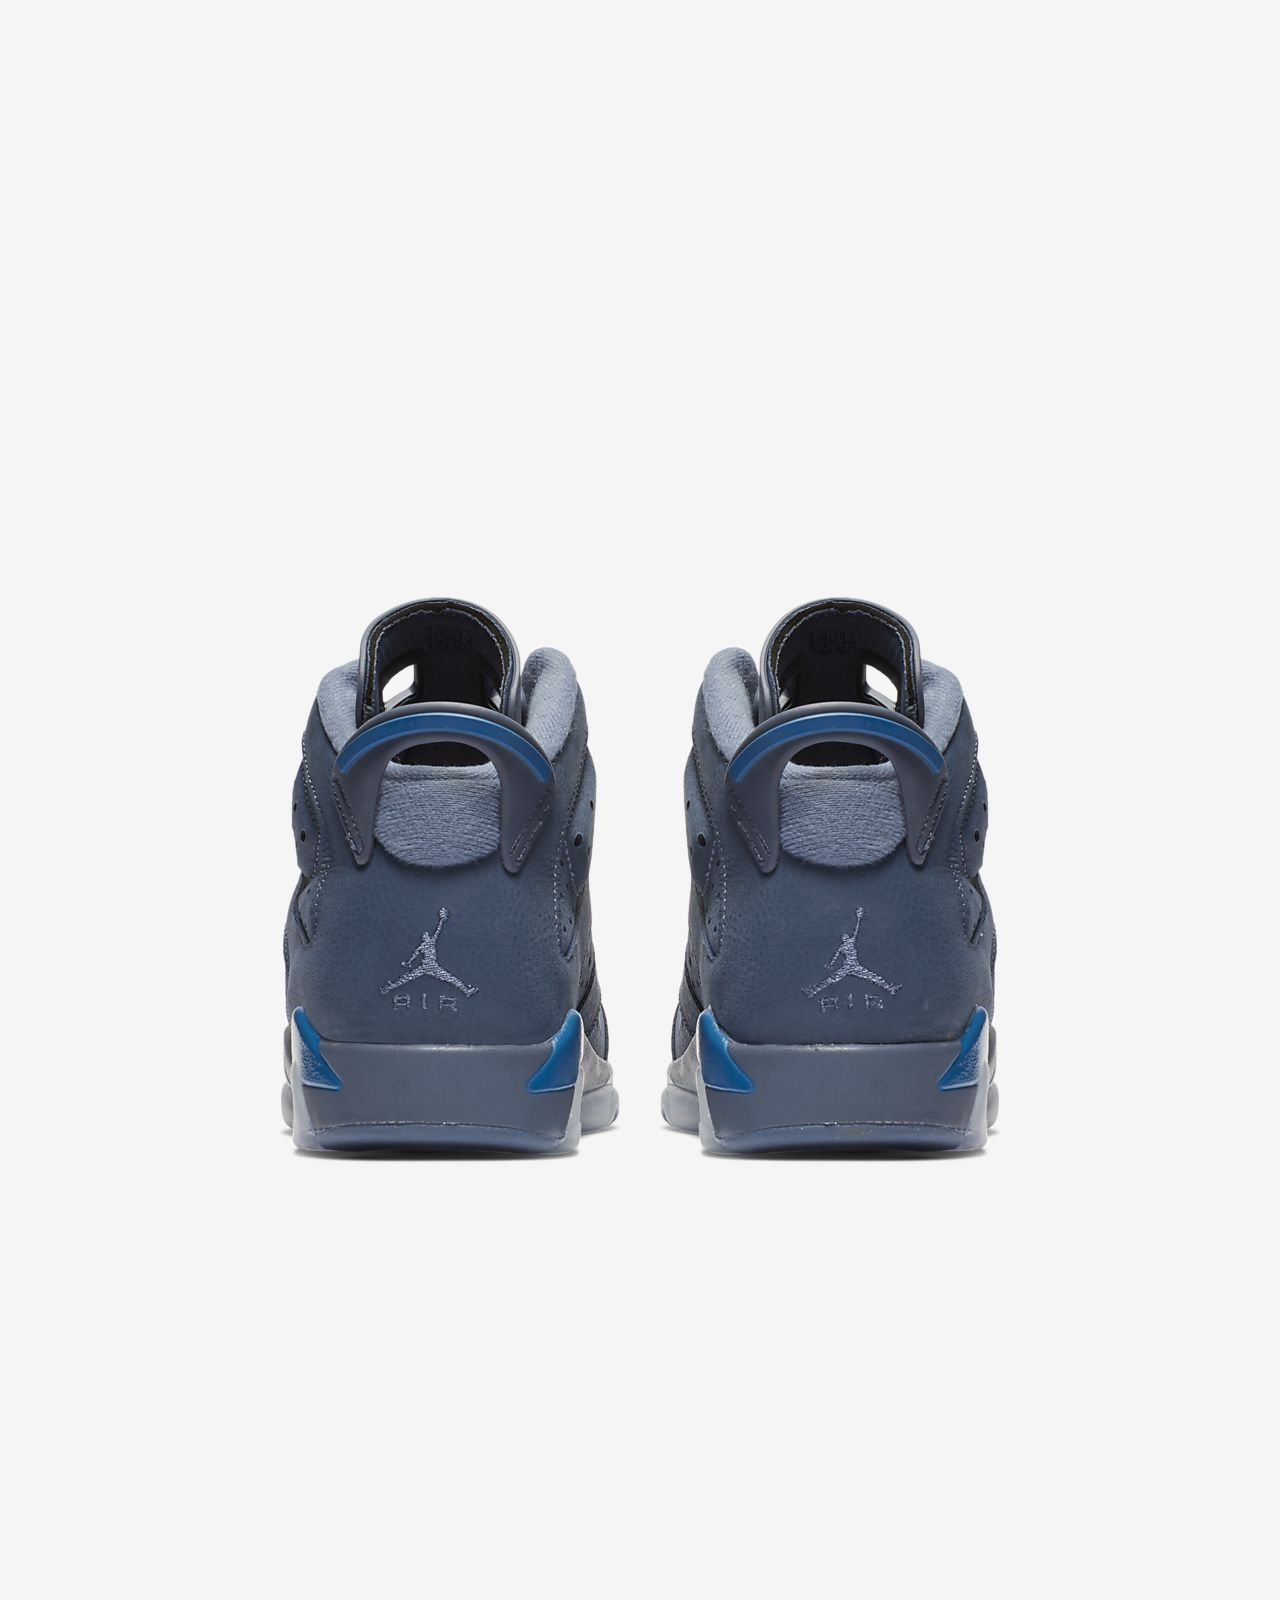 0f086b09f98 Air Jordan 6 Retro Big Kids  Shoe. Nike.com